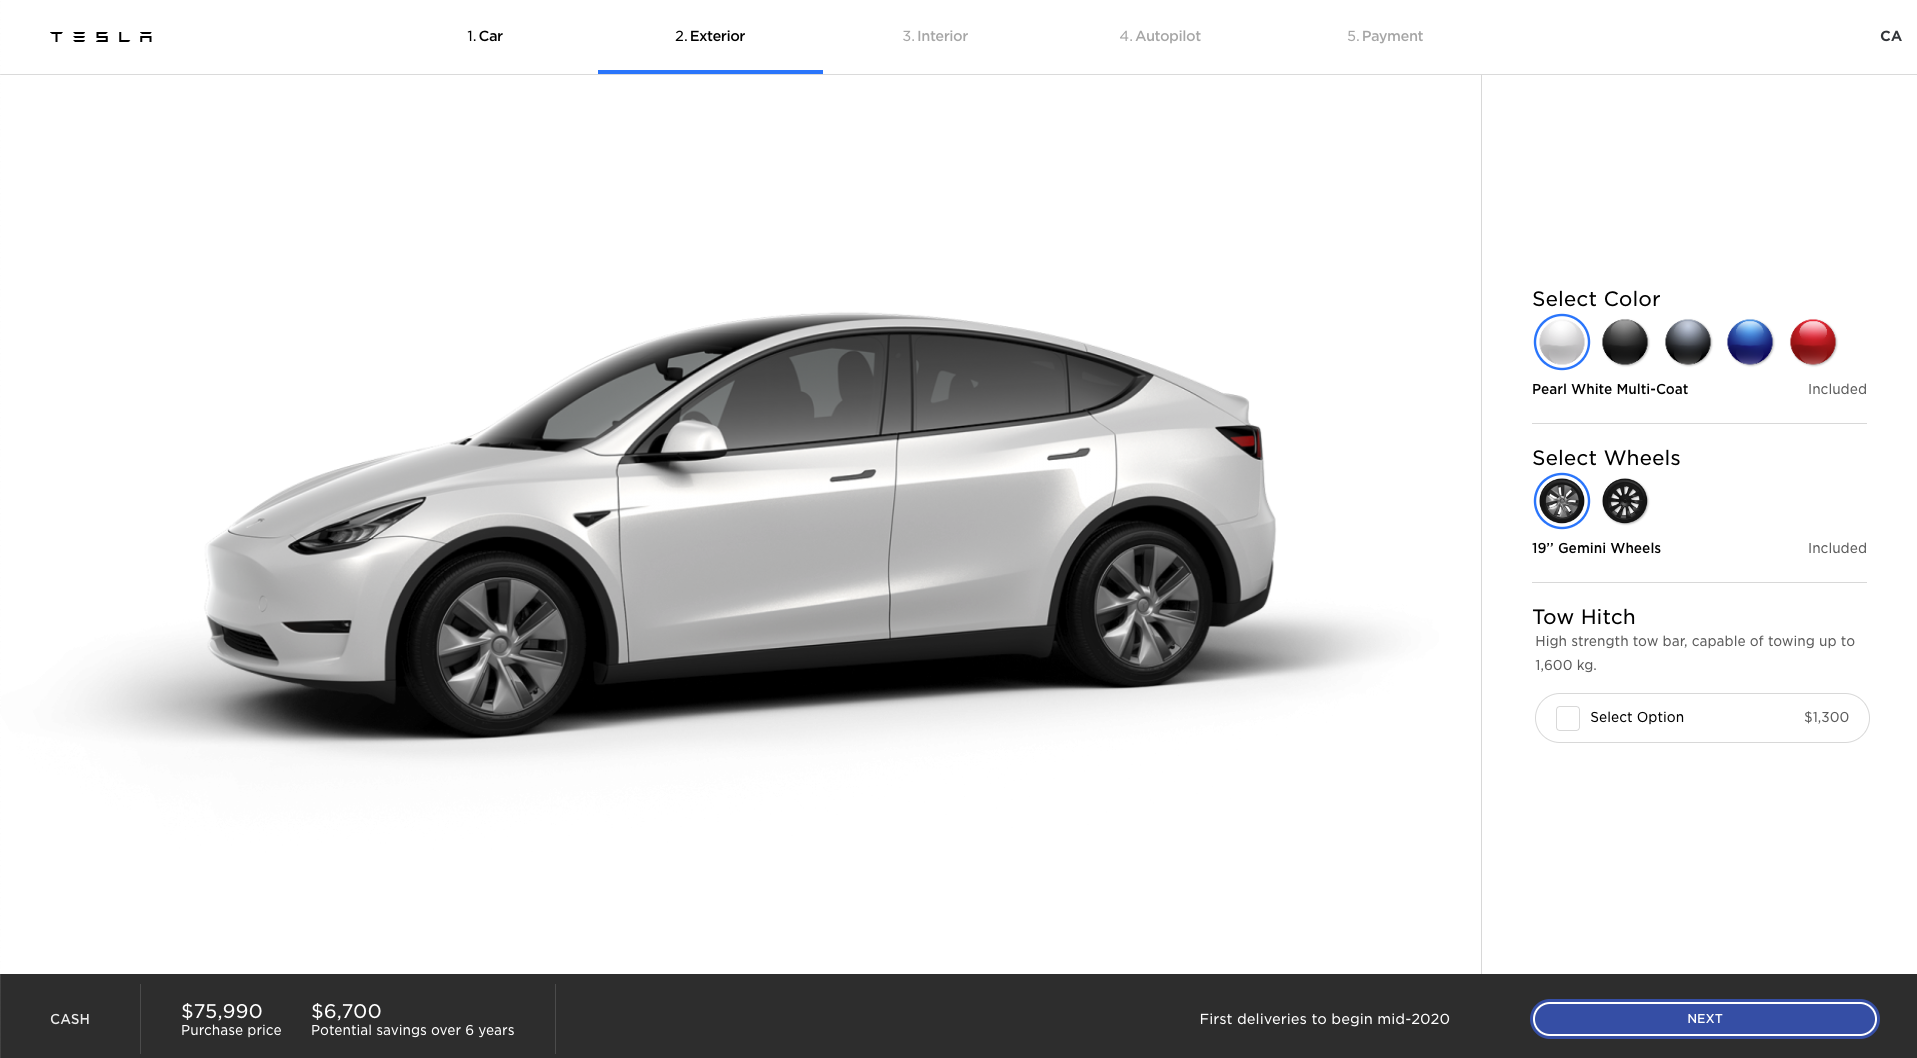 Tesla Model Y tow hitch design studio